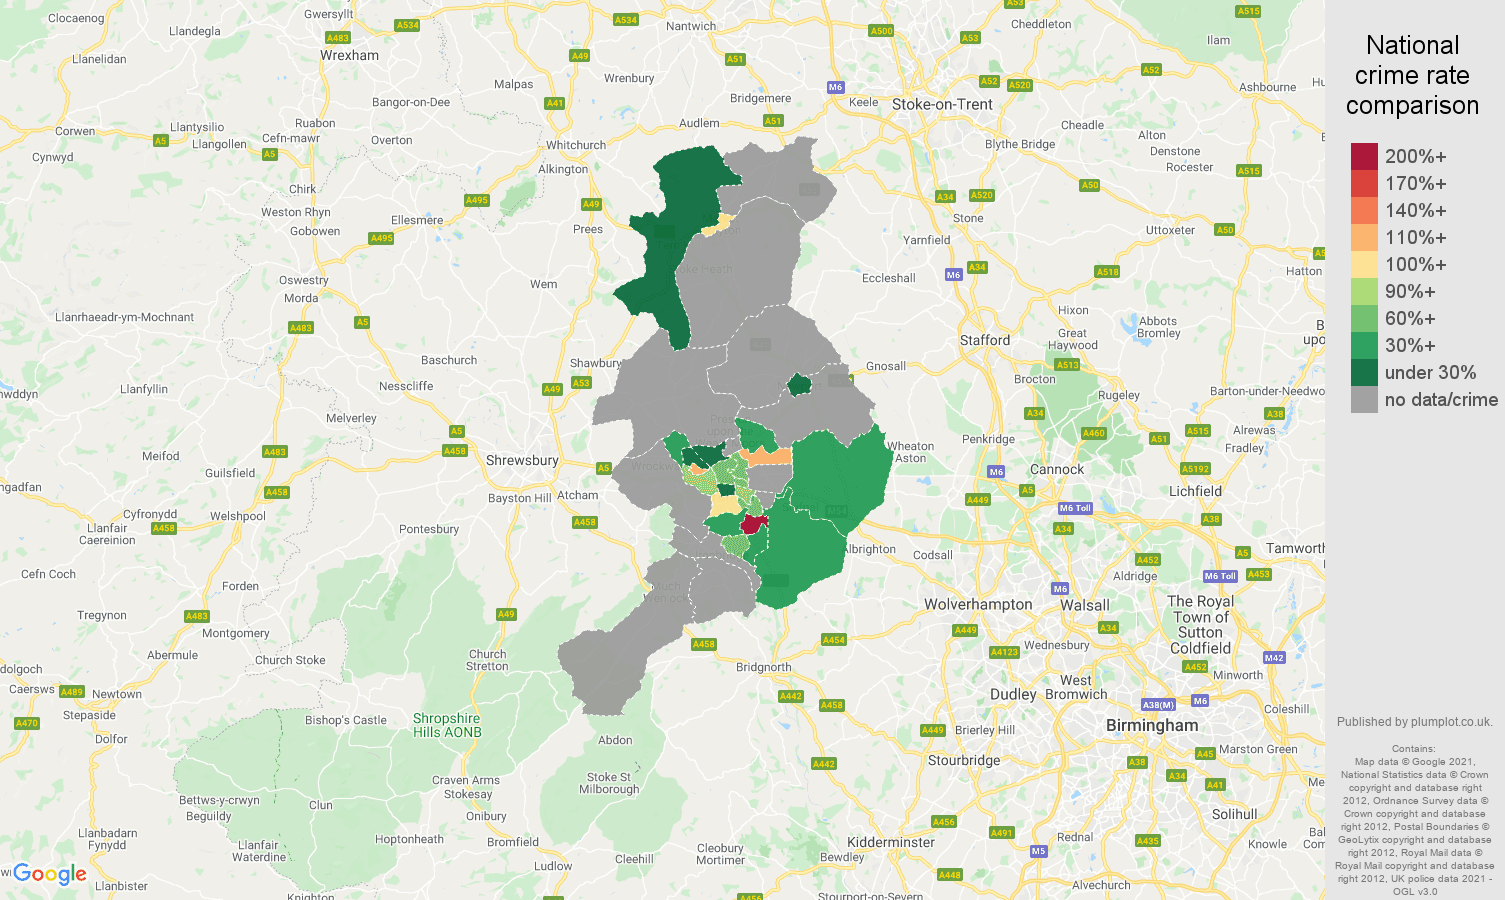 Telford robbery crime rate comparison map